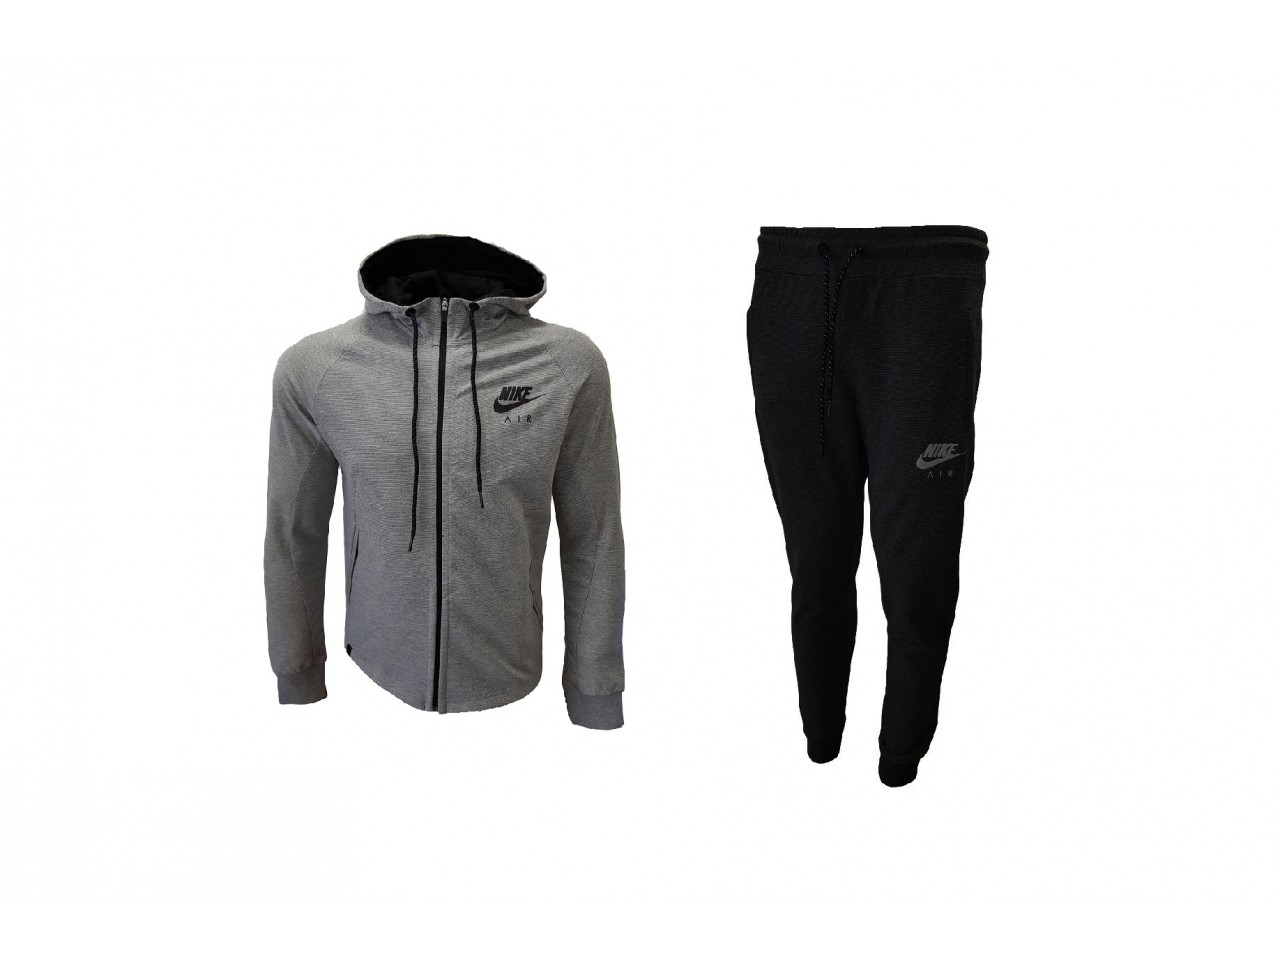 Nike Tracksuit A I R Light Grey Black